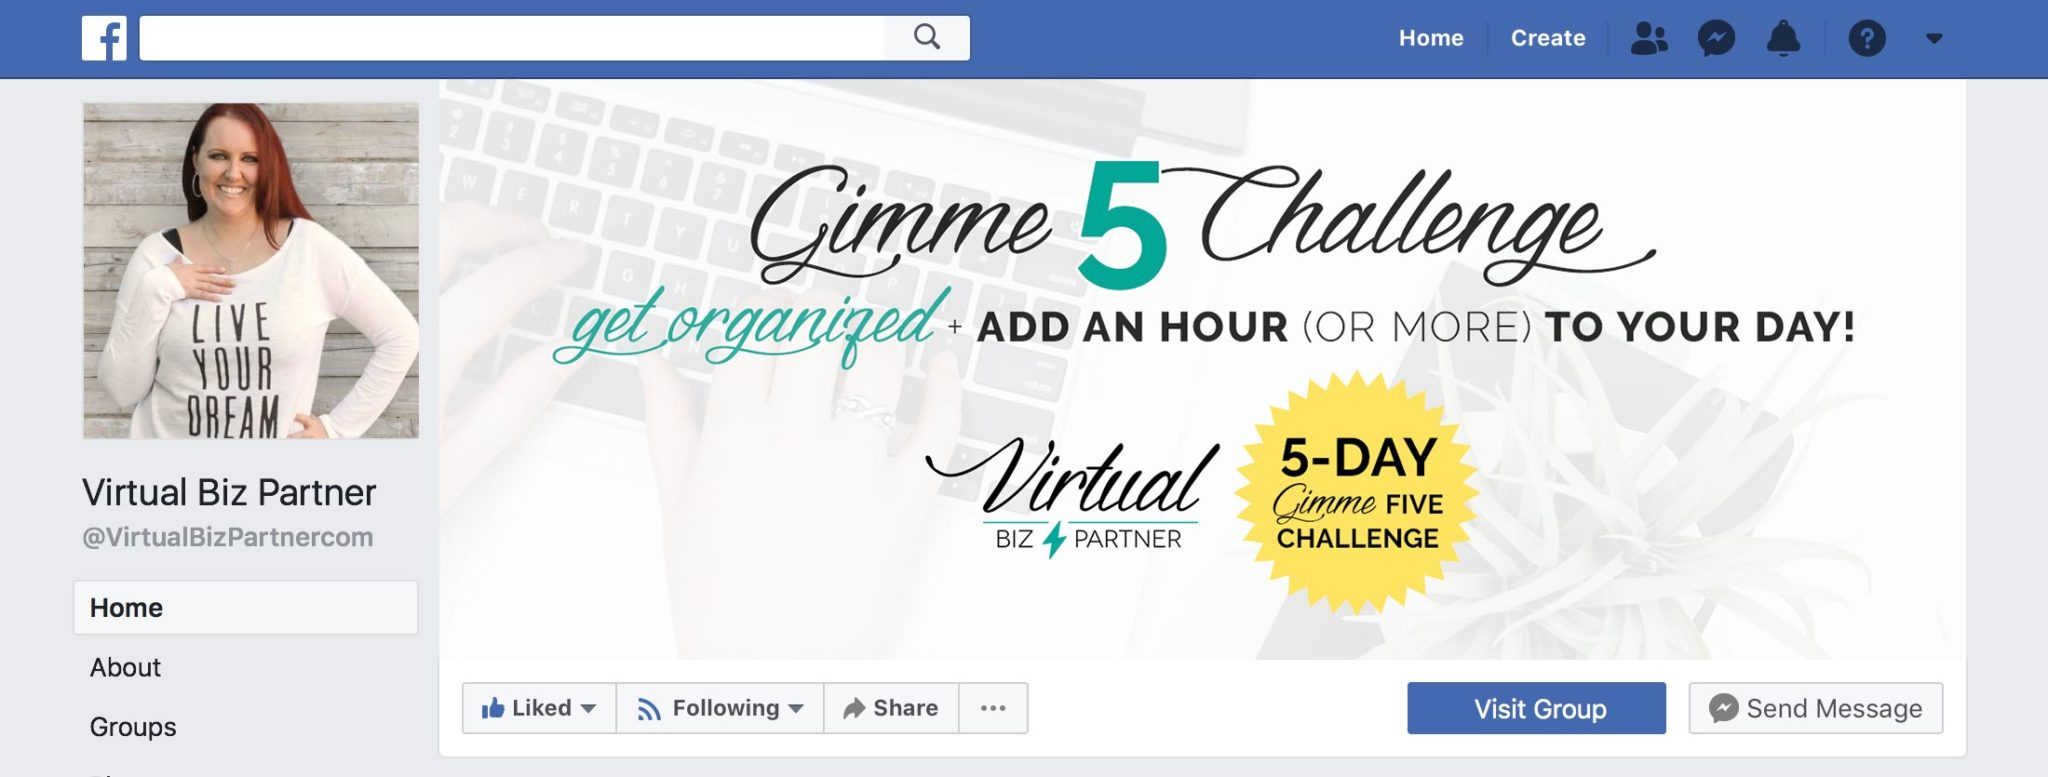 Gimme 5 Campaign Facebook Cover